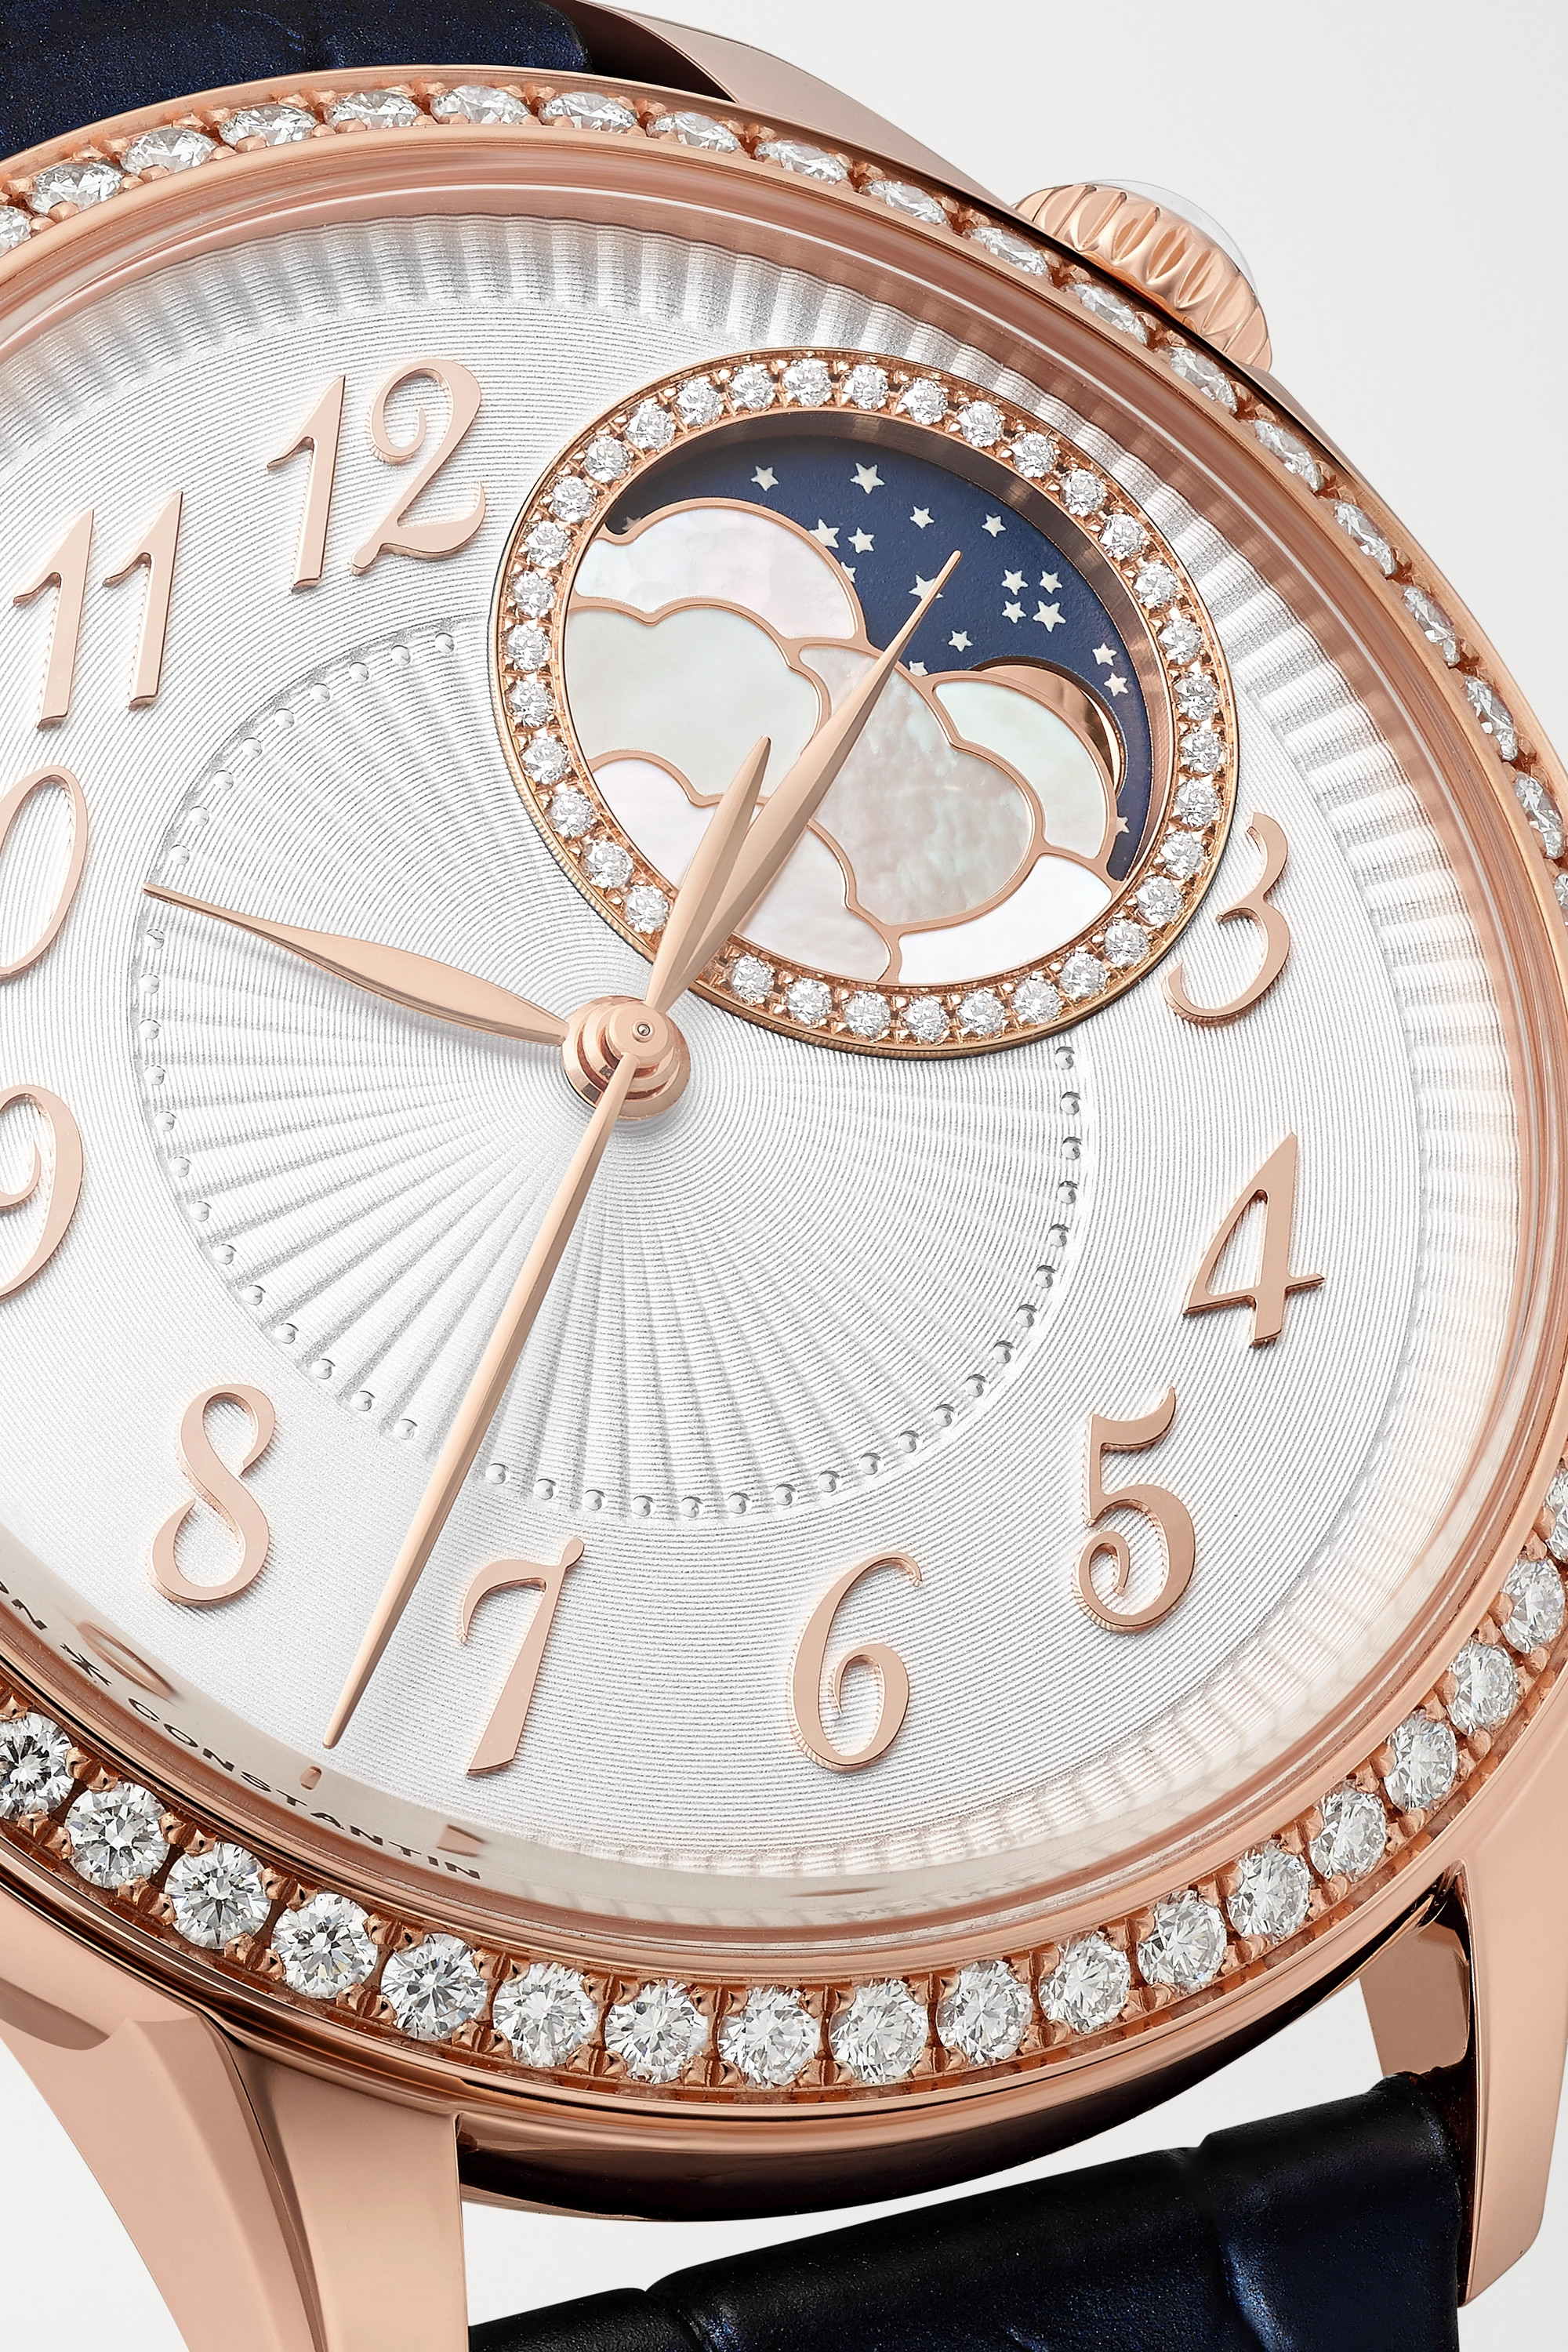 VACHERON CONSTANTIN Egérie Automatic Moon-Phase 37mm 18-karat pink gold and diamond watch